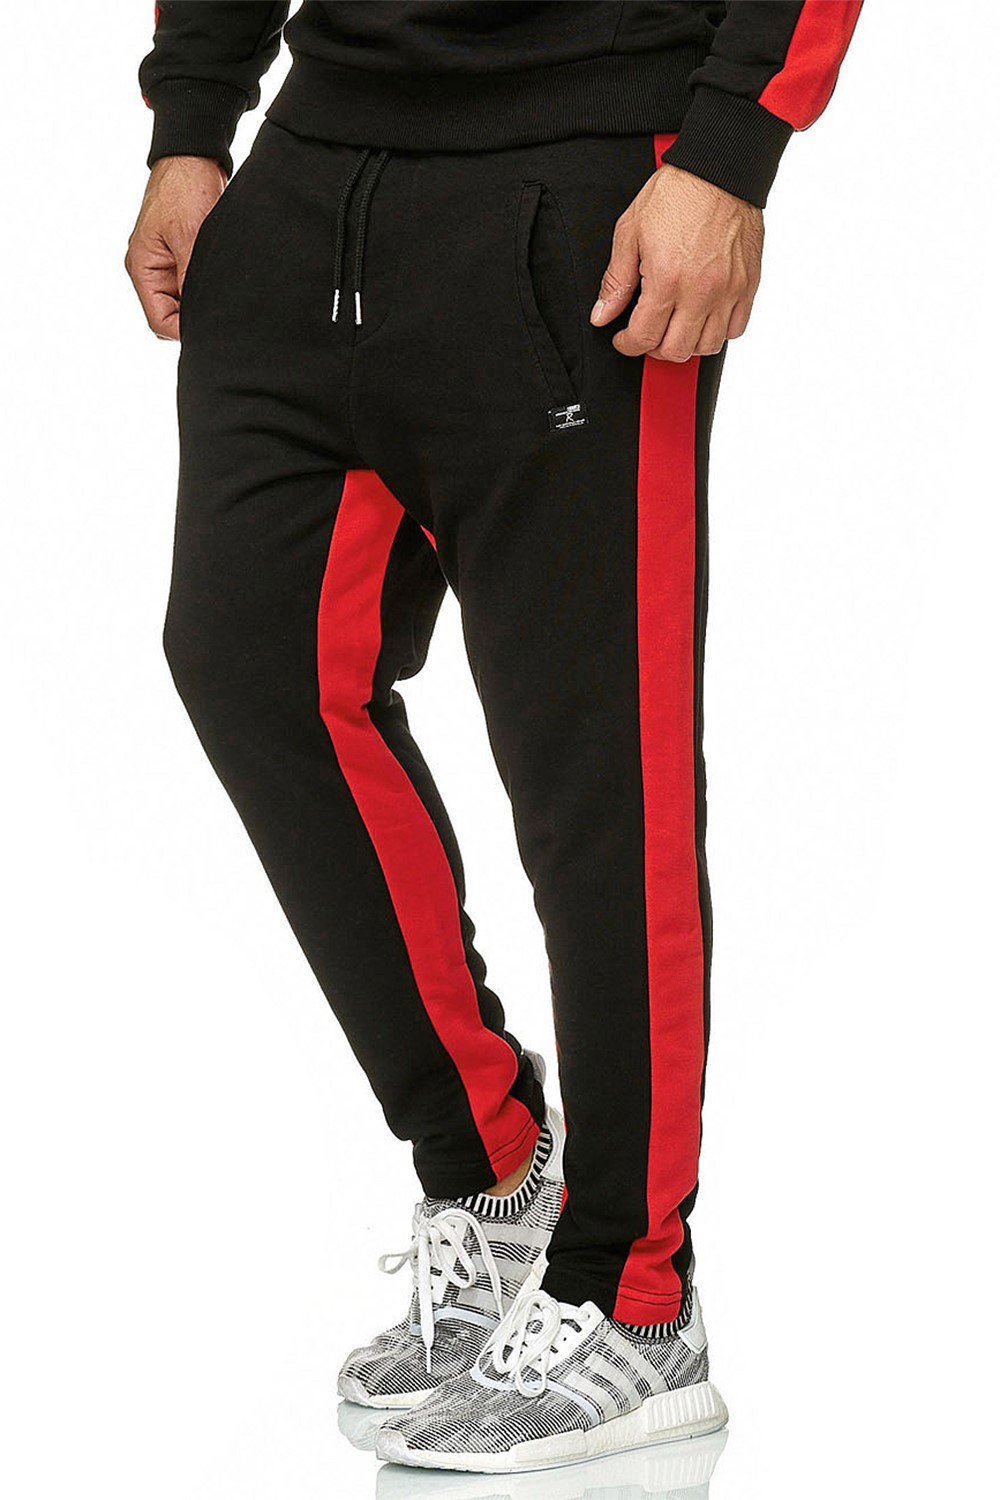 Redbridge-senores-regular-fit-chandal-fitness-sueter-aerobic-pantalones miniatura 13